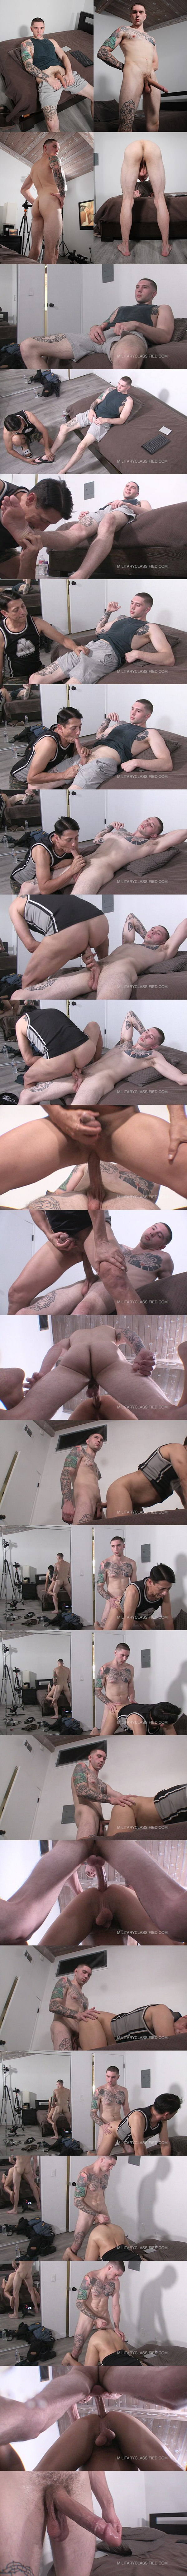 Militaryclassified - cocky straight Marine, big-cocked stud Gotti (aka Jake Hart) gets his manly bare feet worshiped by Rob before he barebacks and breeds Rob 02